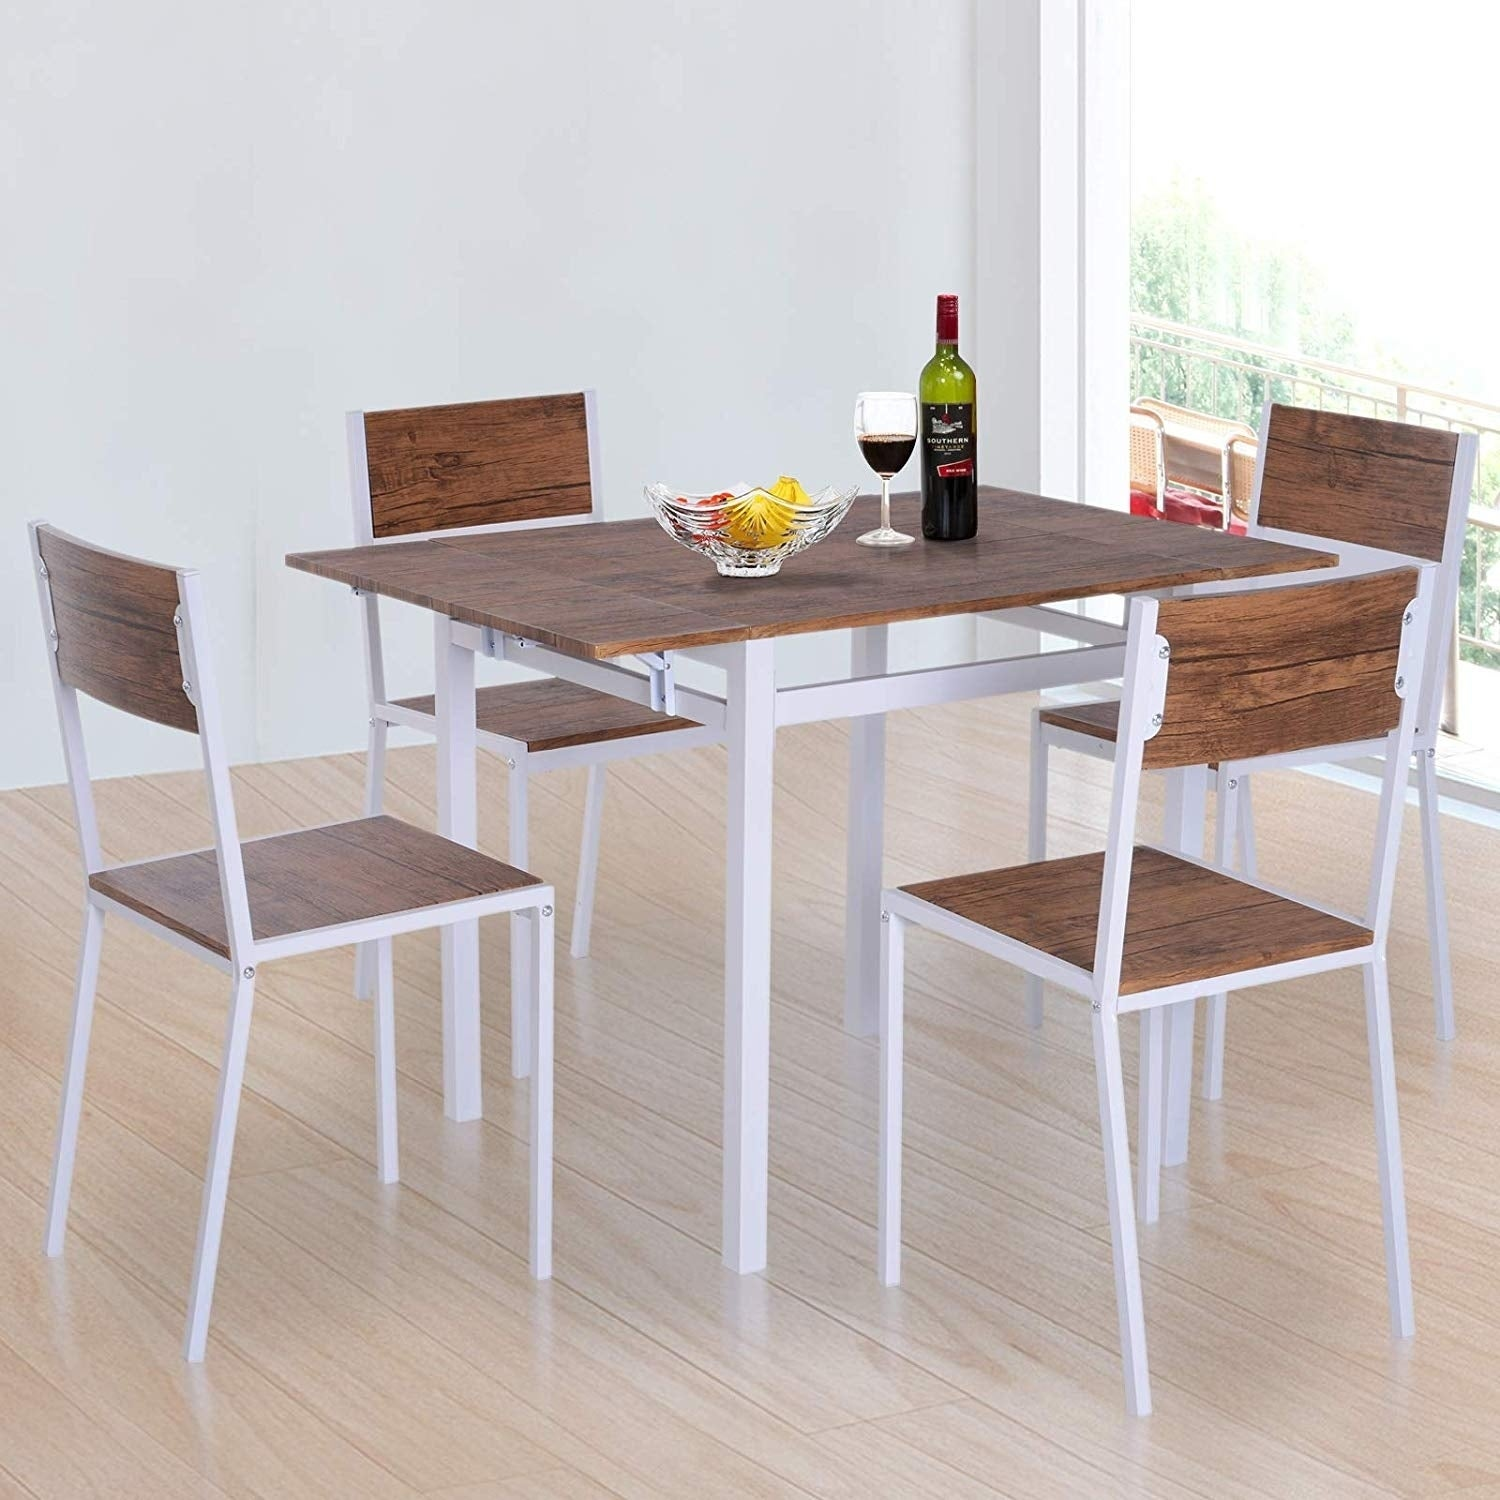 Silver Dining Table And Chairs, Shop 5 Piece Drop Leaf Counter Height Dining Table And Chairs Set Overstock 28288349